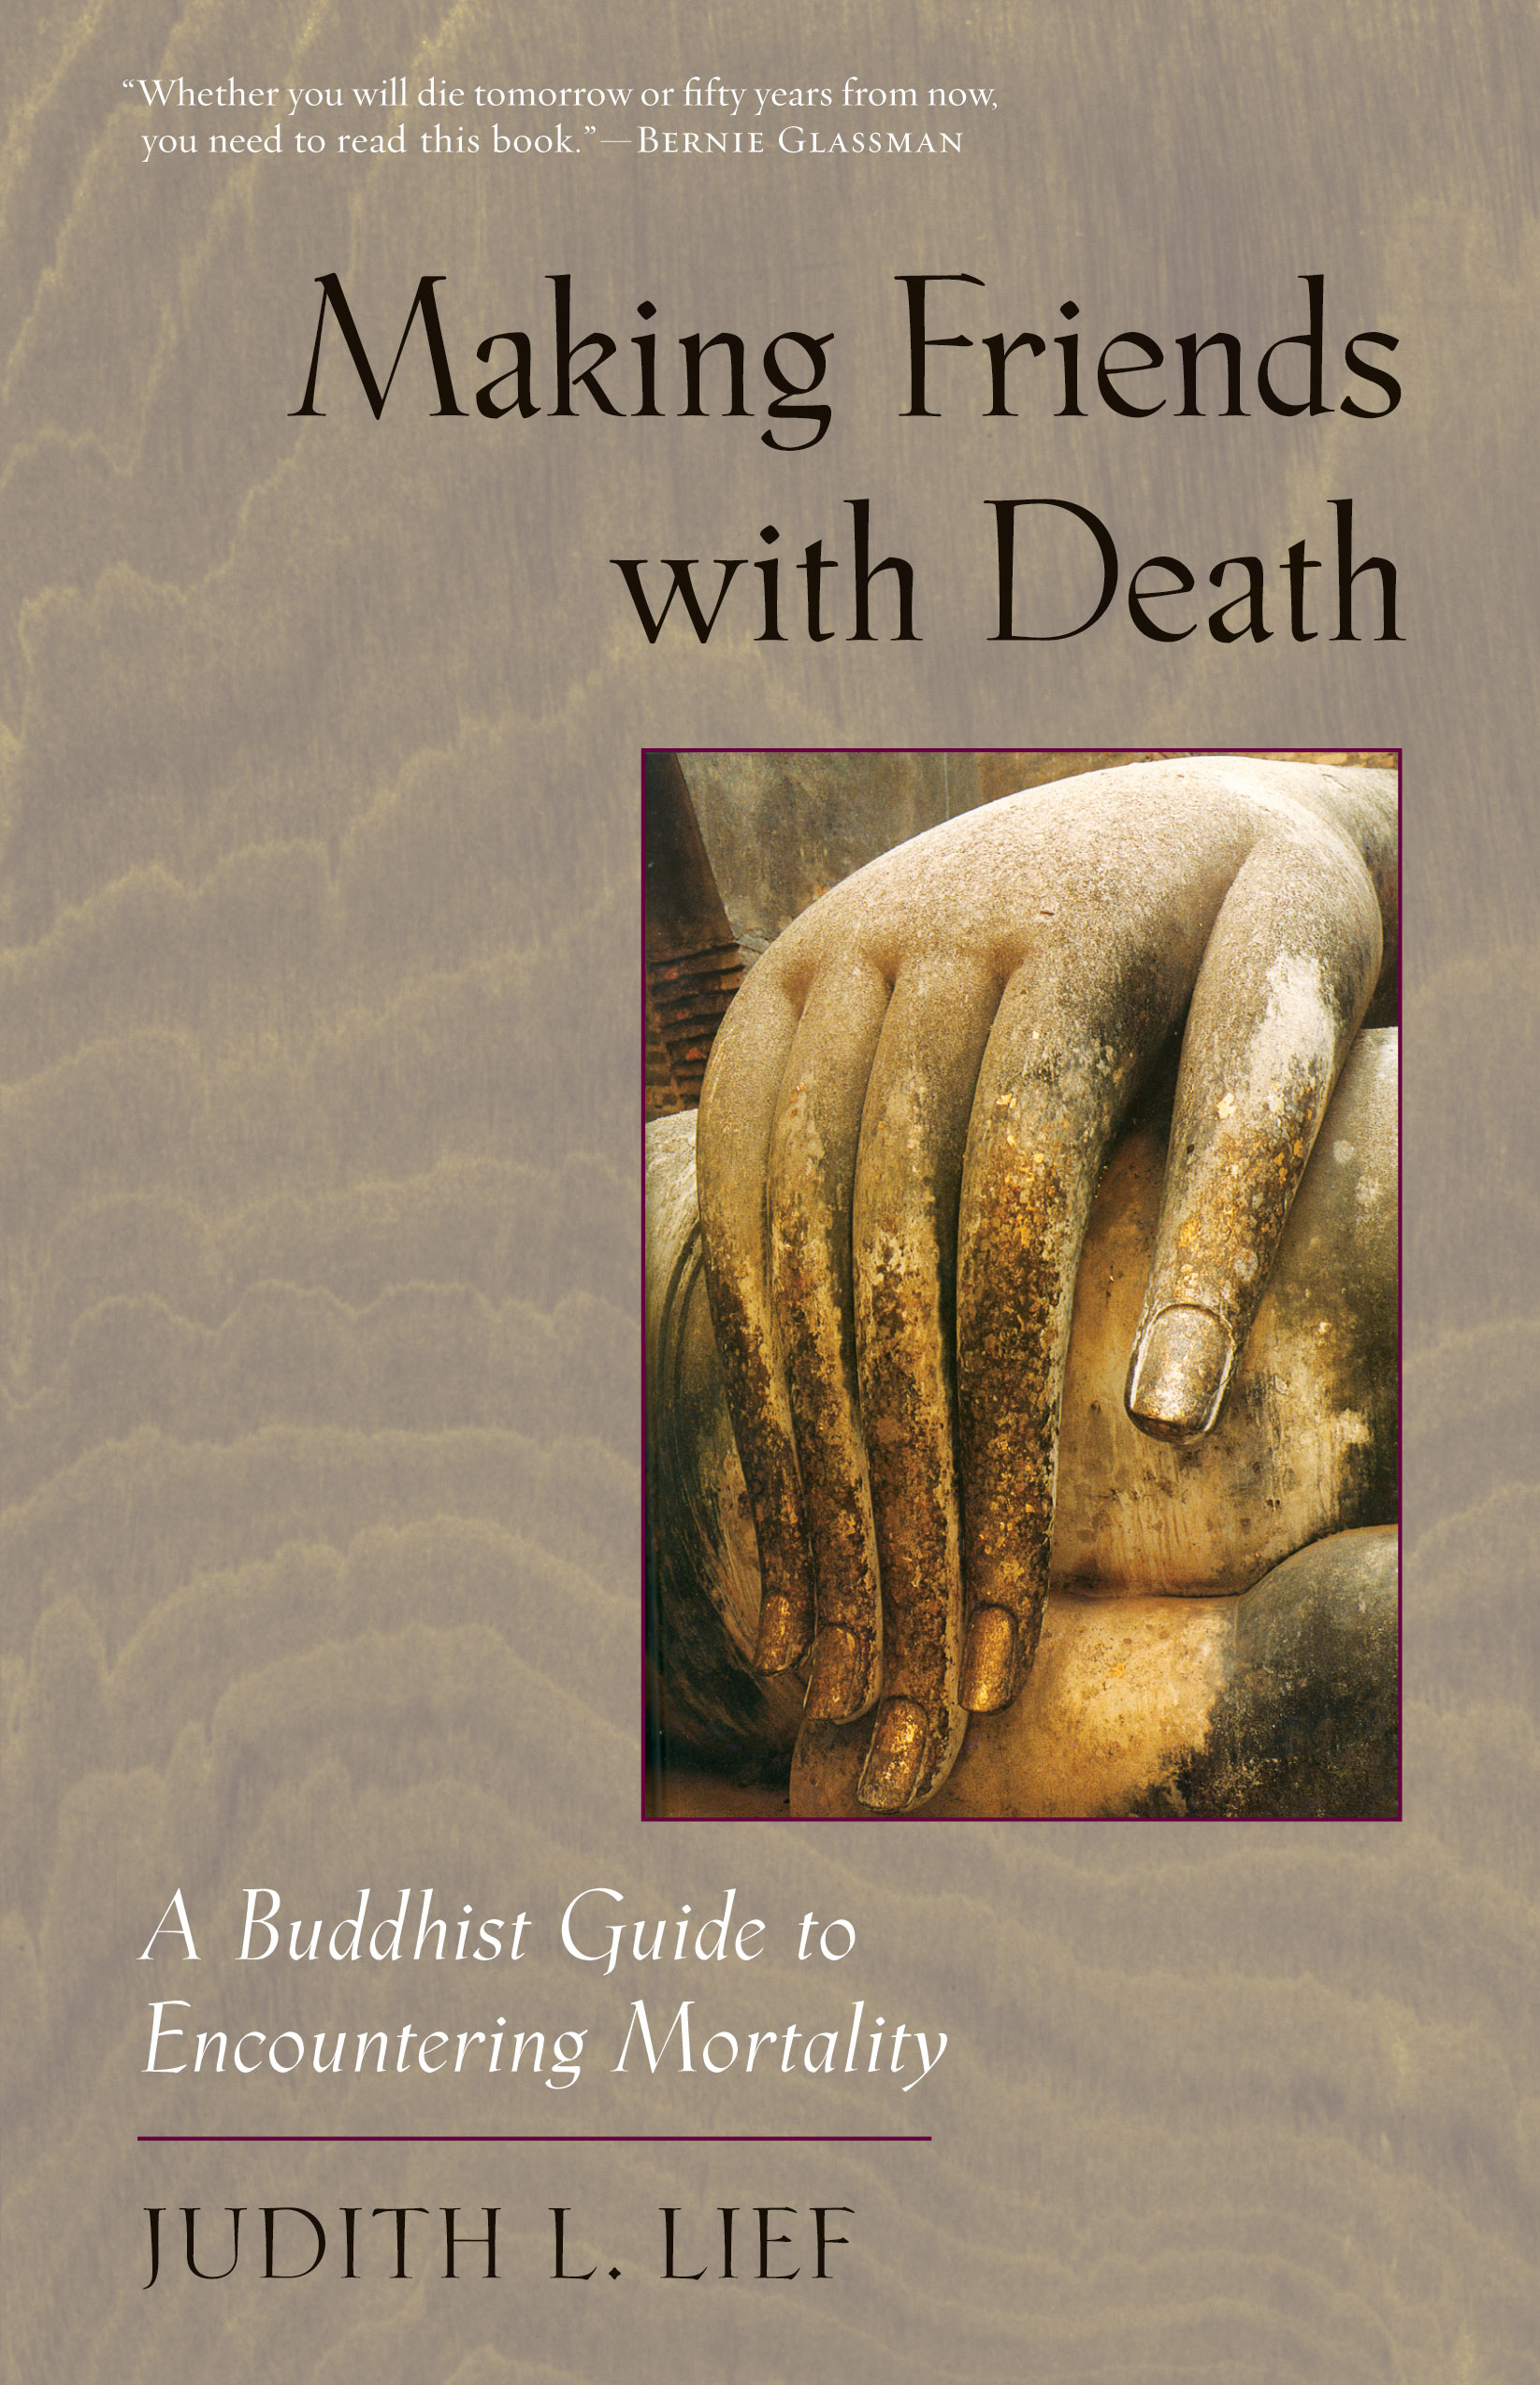 Making Friends with Death: A Buddhist Guide to Encountering Mortality By: Judith L. Lief